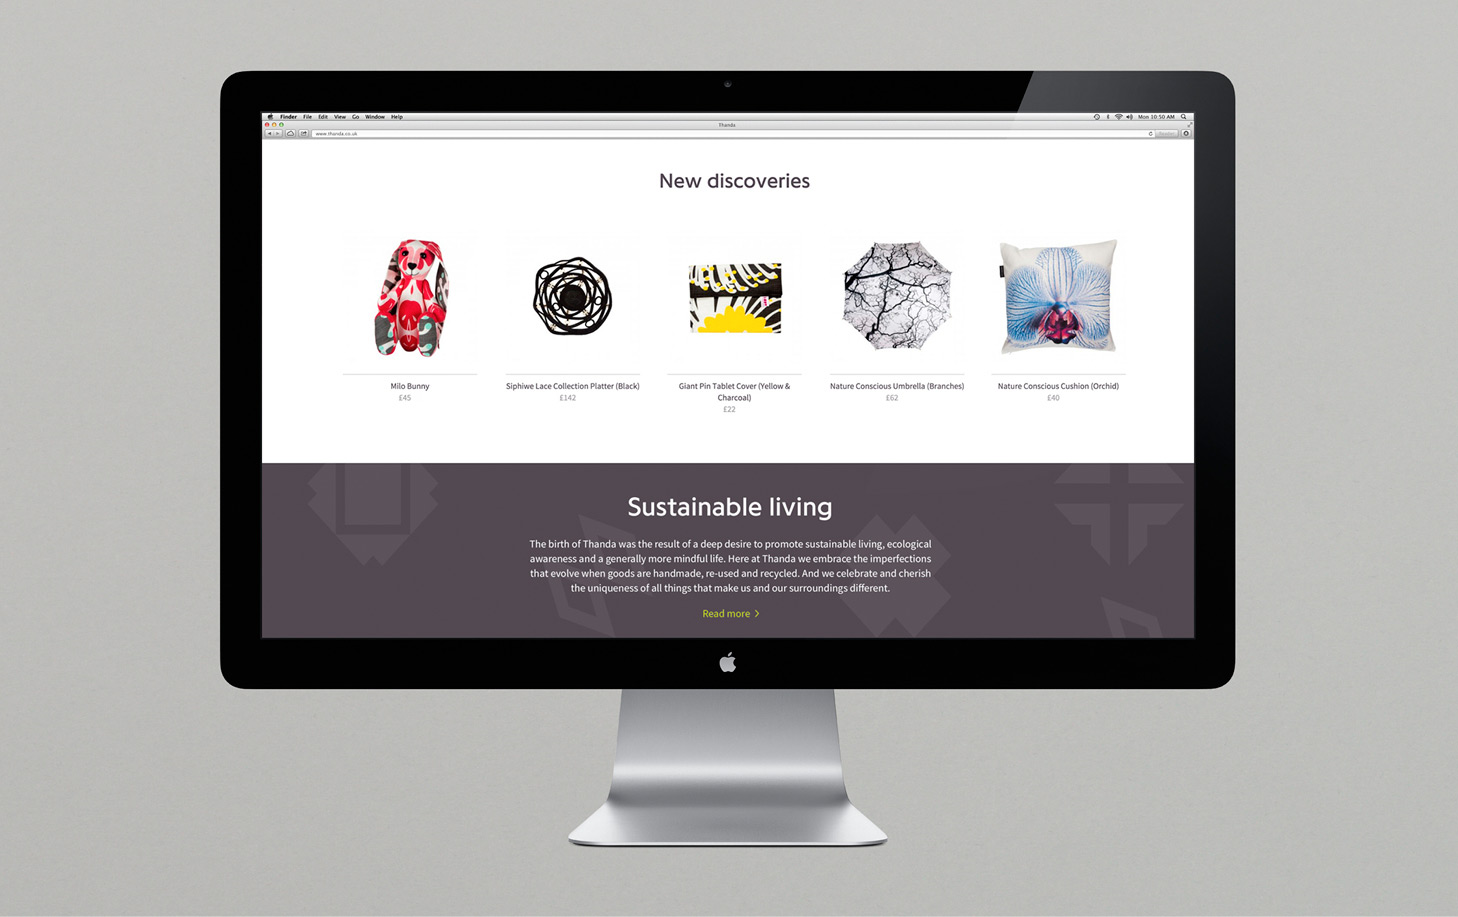 Brand identity and website by UK graphic design studio Karoshi for conscientious interior accessory business Thanda